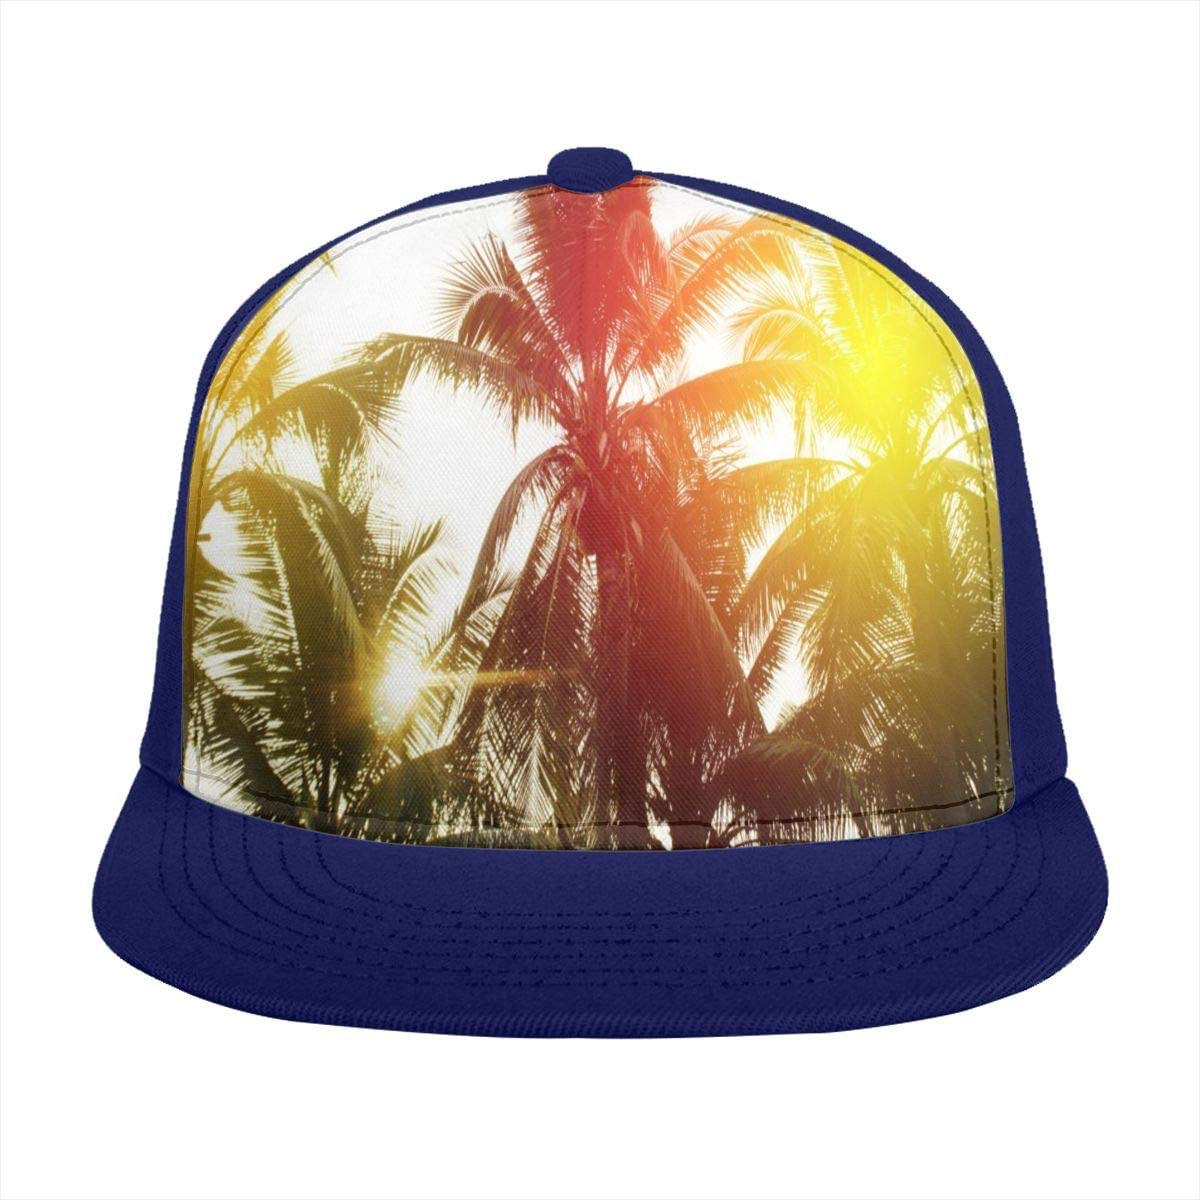 SLHFPX Baseball Cap Tropical Palm Trees On Sky Trucker Hats Adjustable Sun Cap for Women Men Teen